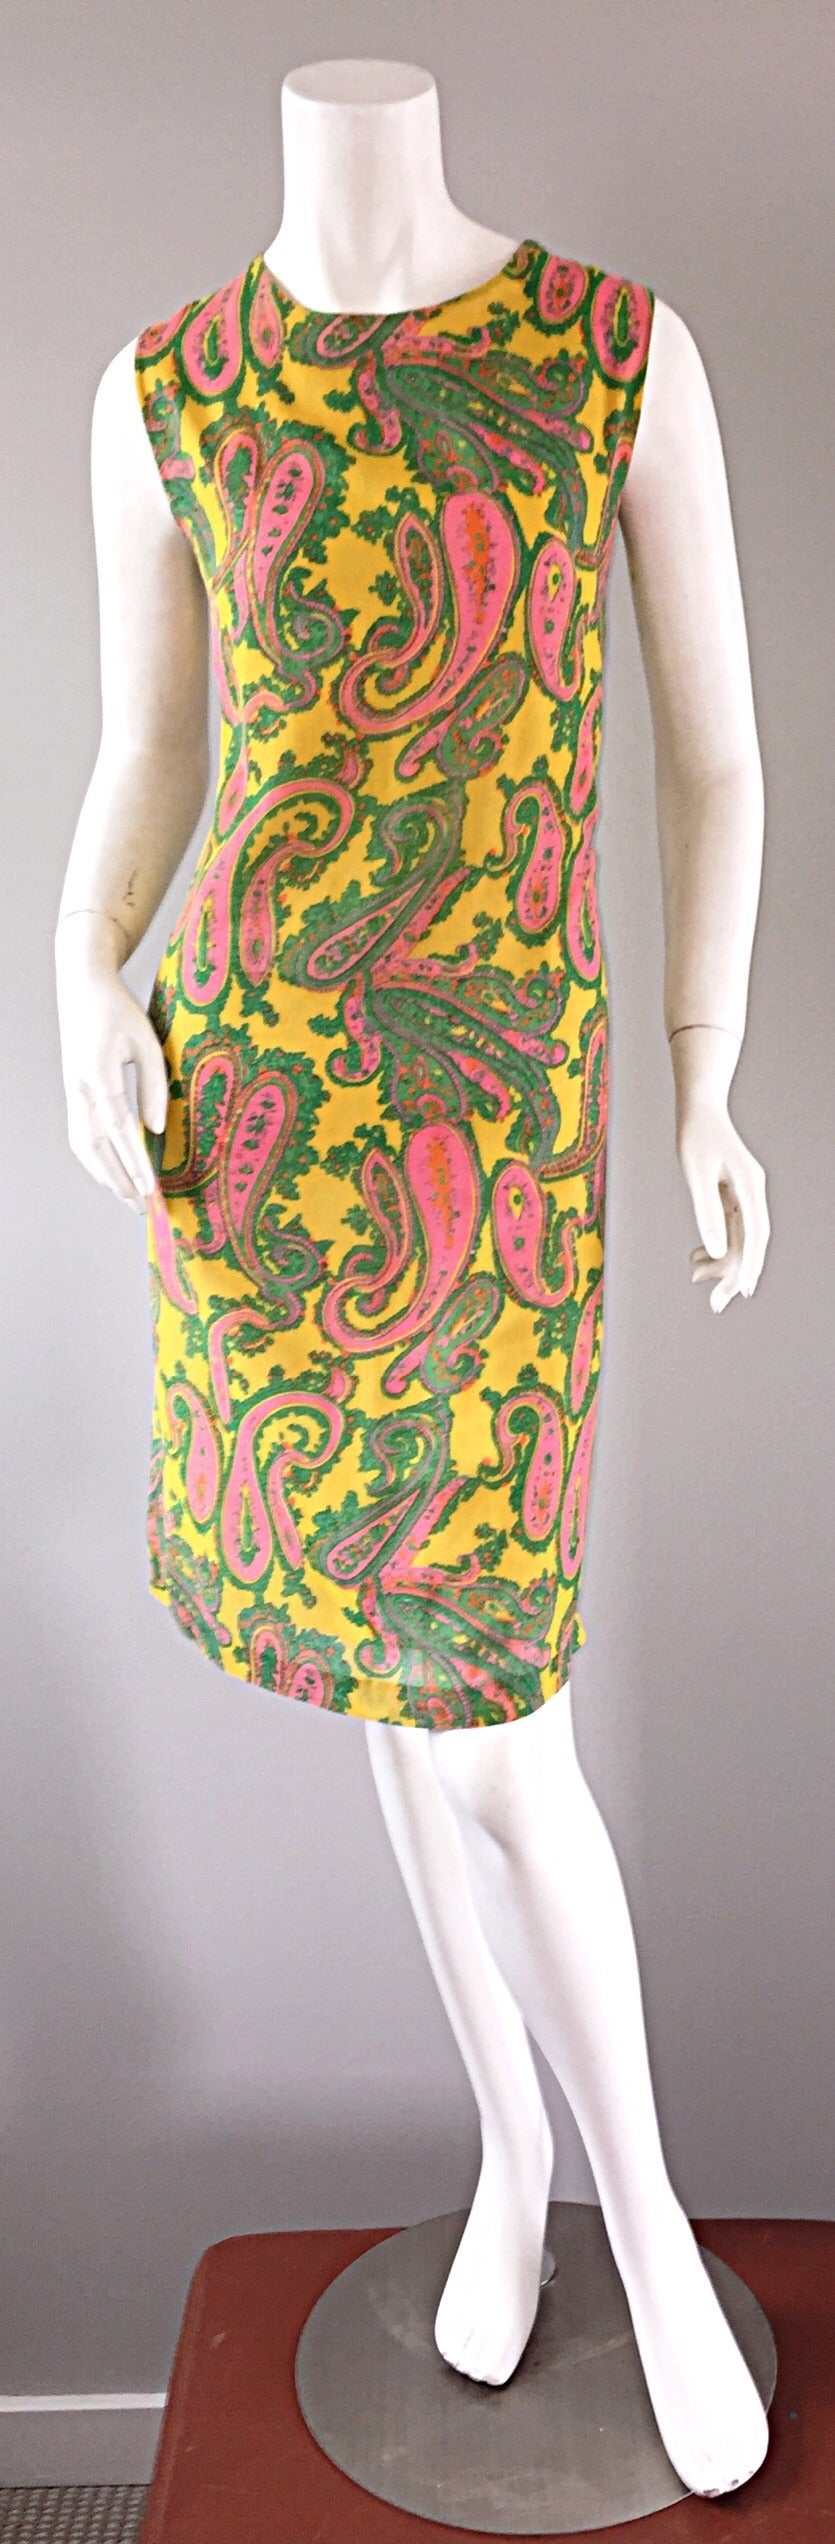 Awesome 1960s cotton shift dress! Vibrant yellow, with green and pink paisley print throughout. Wonderful 'shift' shape, that flatters every shape and size! Fully lined in lightweight cotton. Full metal zipper up the back. Looks great alone, or